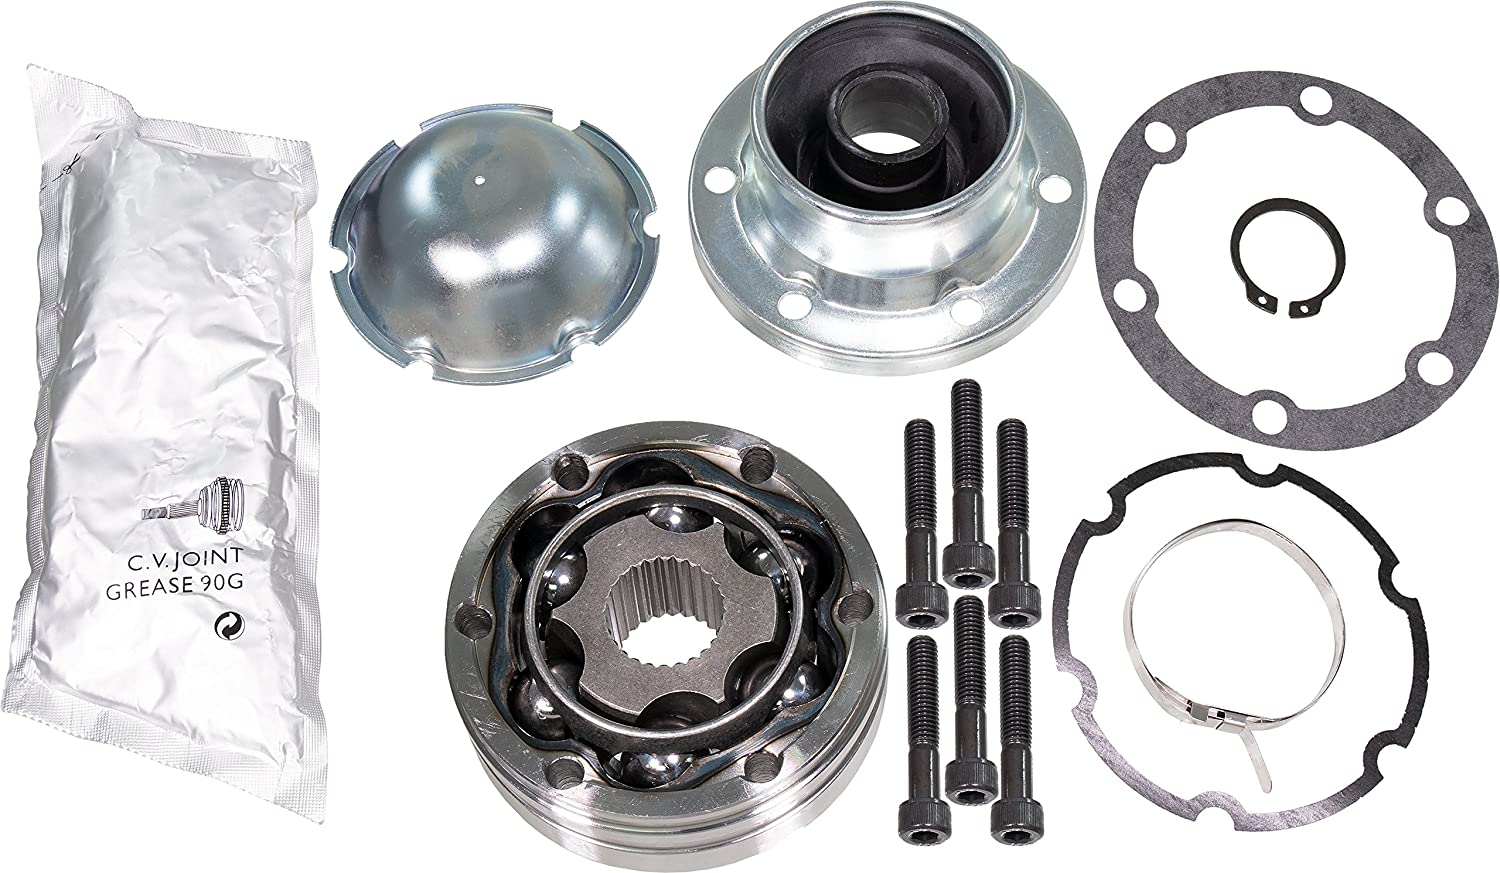 APDTY 043312 Front Driveshaft Propeller Drive Shaft CV Joint Kit Fits Select Explorer Ranger Mountaineer Aviator B3000 B4000 Transfer Case Side; Replaces 1L2Z-4A376-AA, XL2Z-4A376-AA